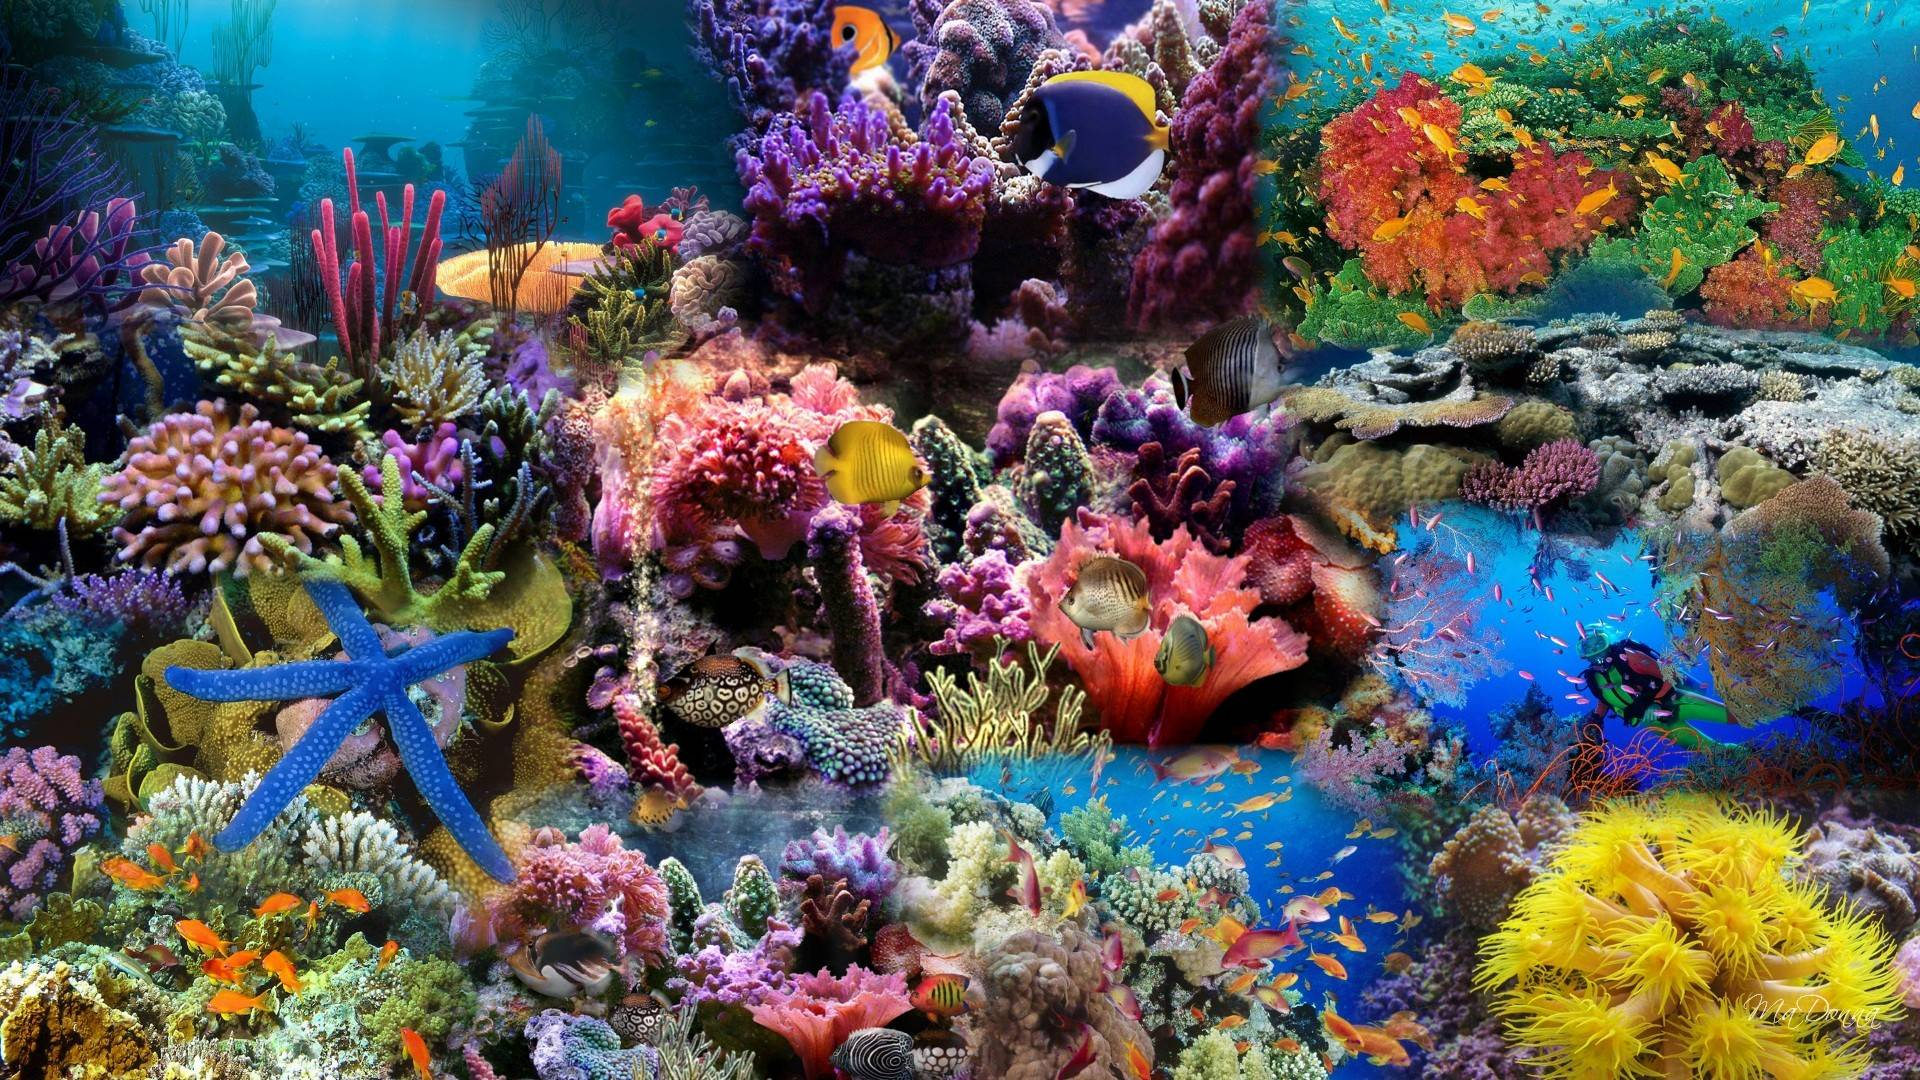 aquarium wallpaper hd-#4